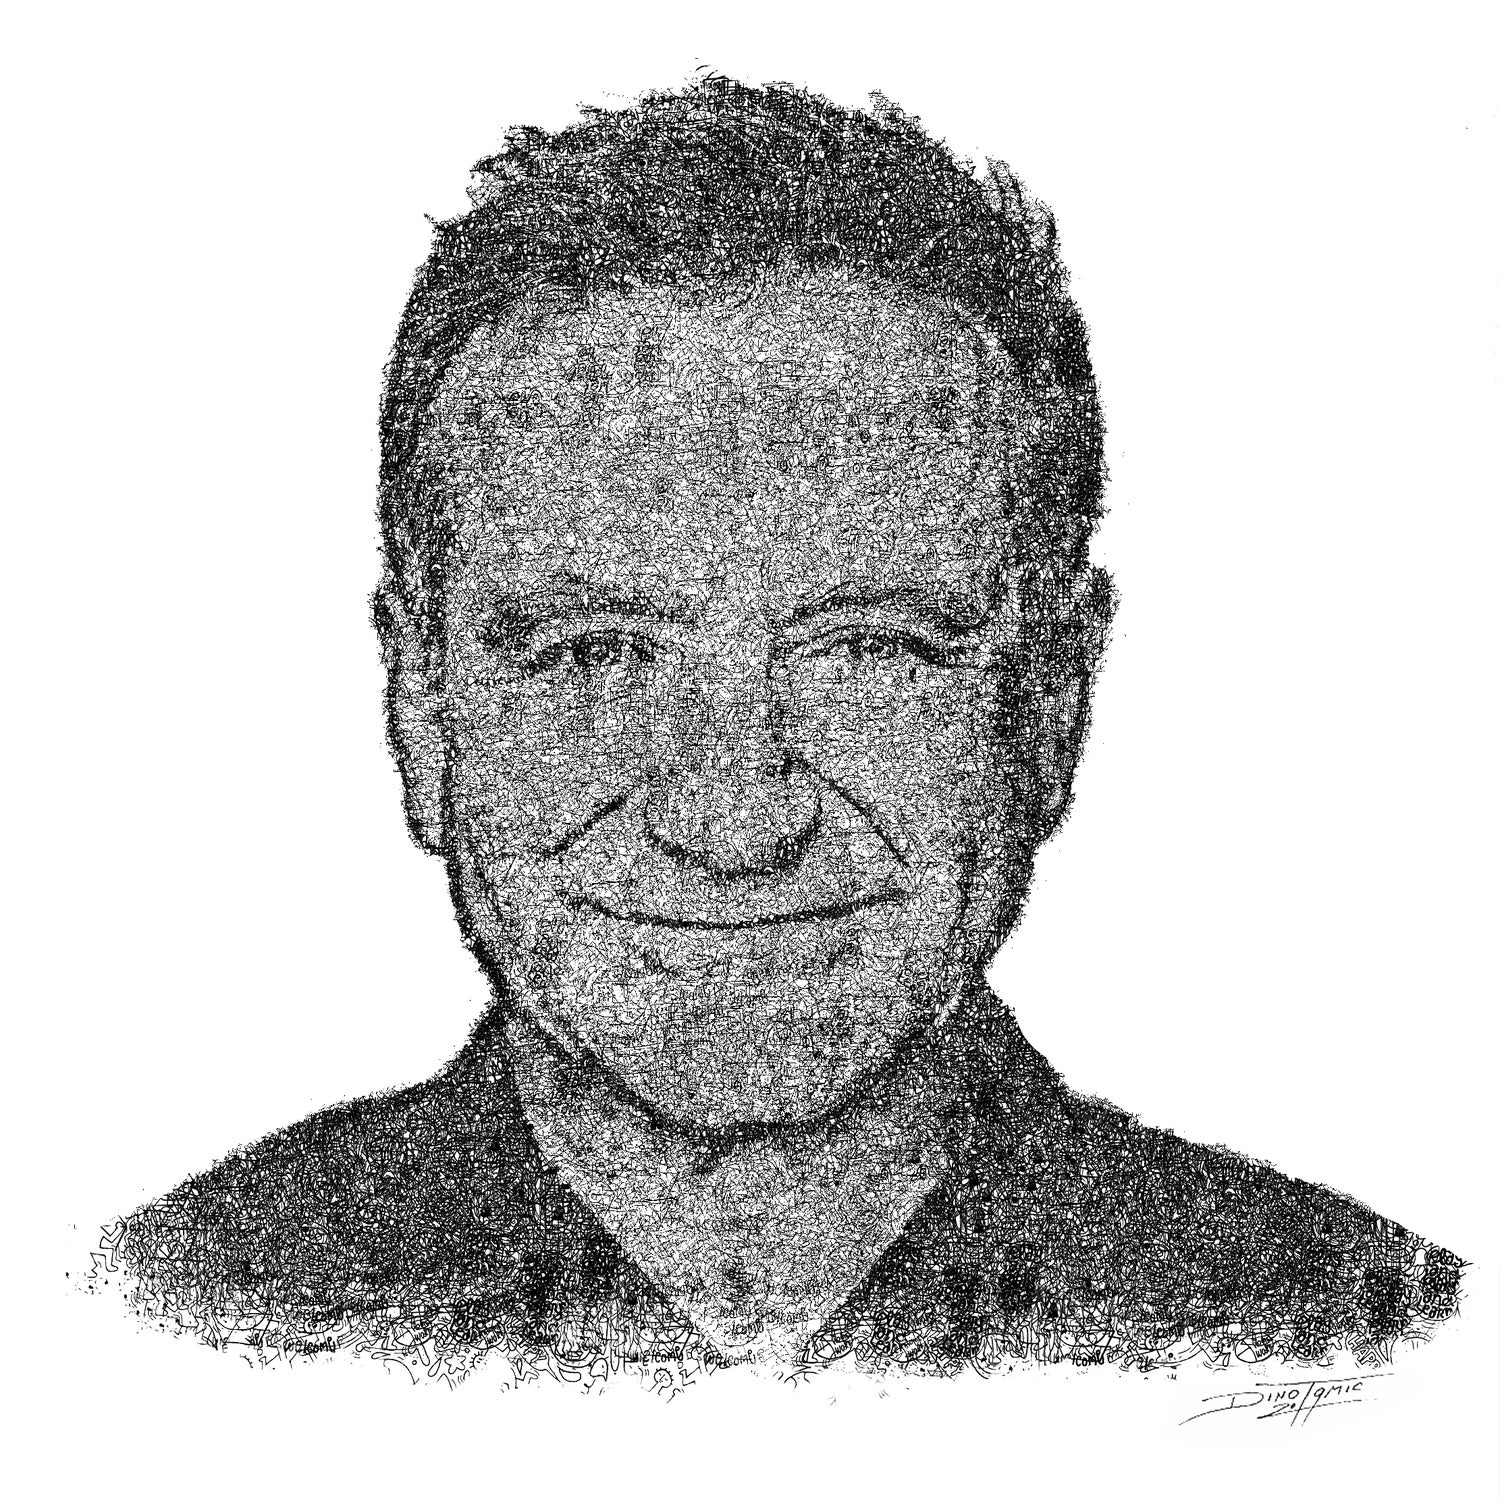 Image of #134 Robin Williams doodle